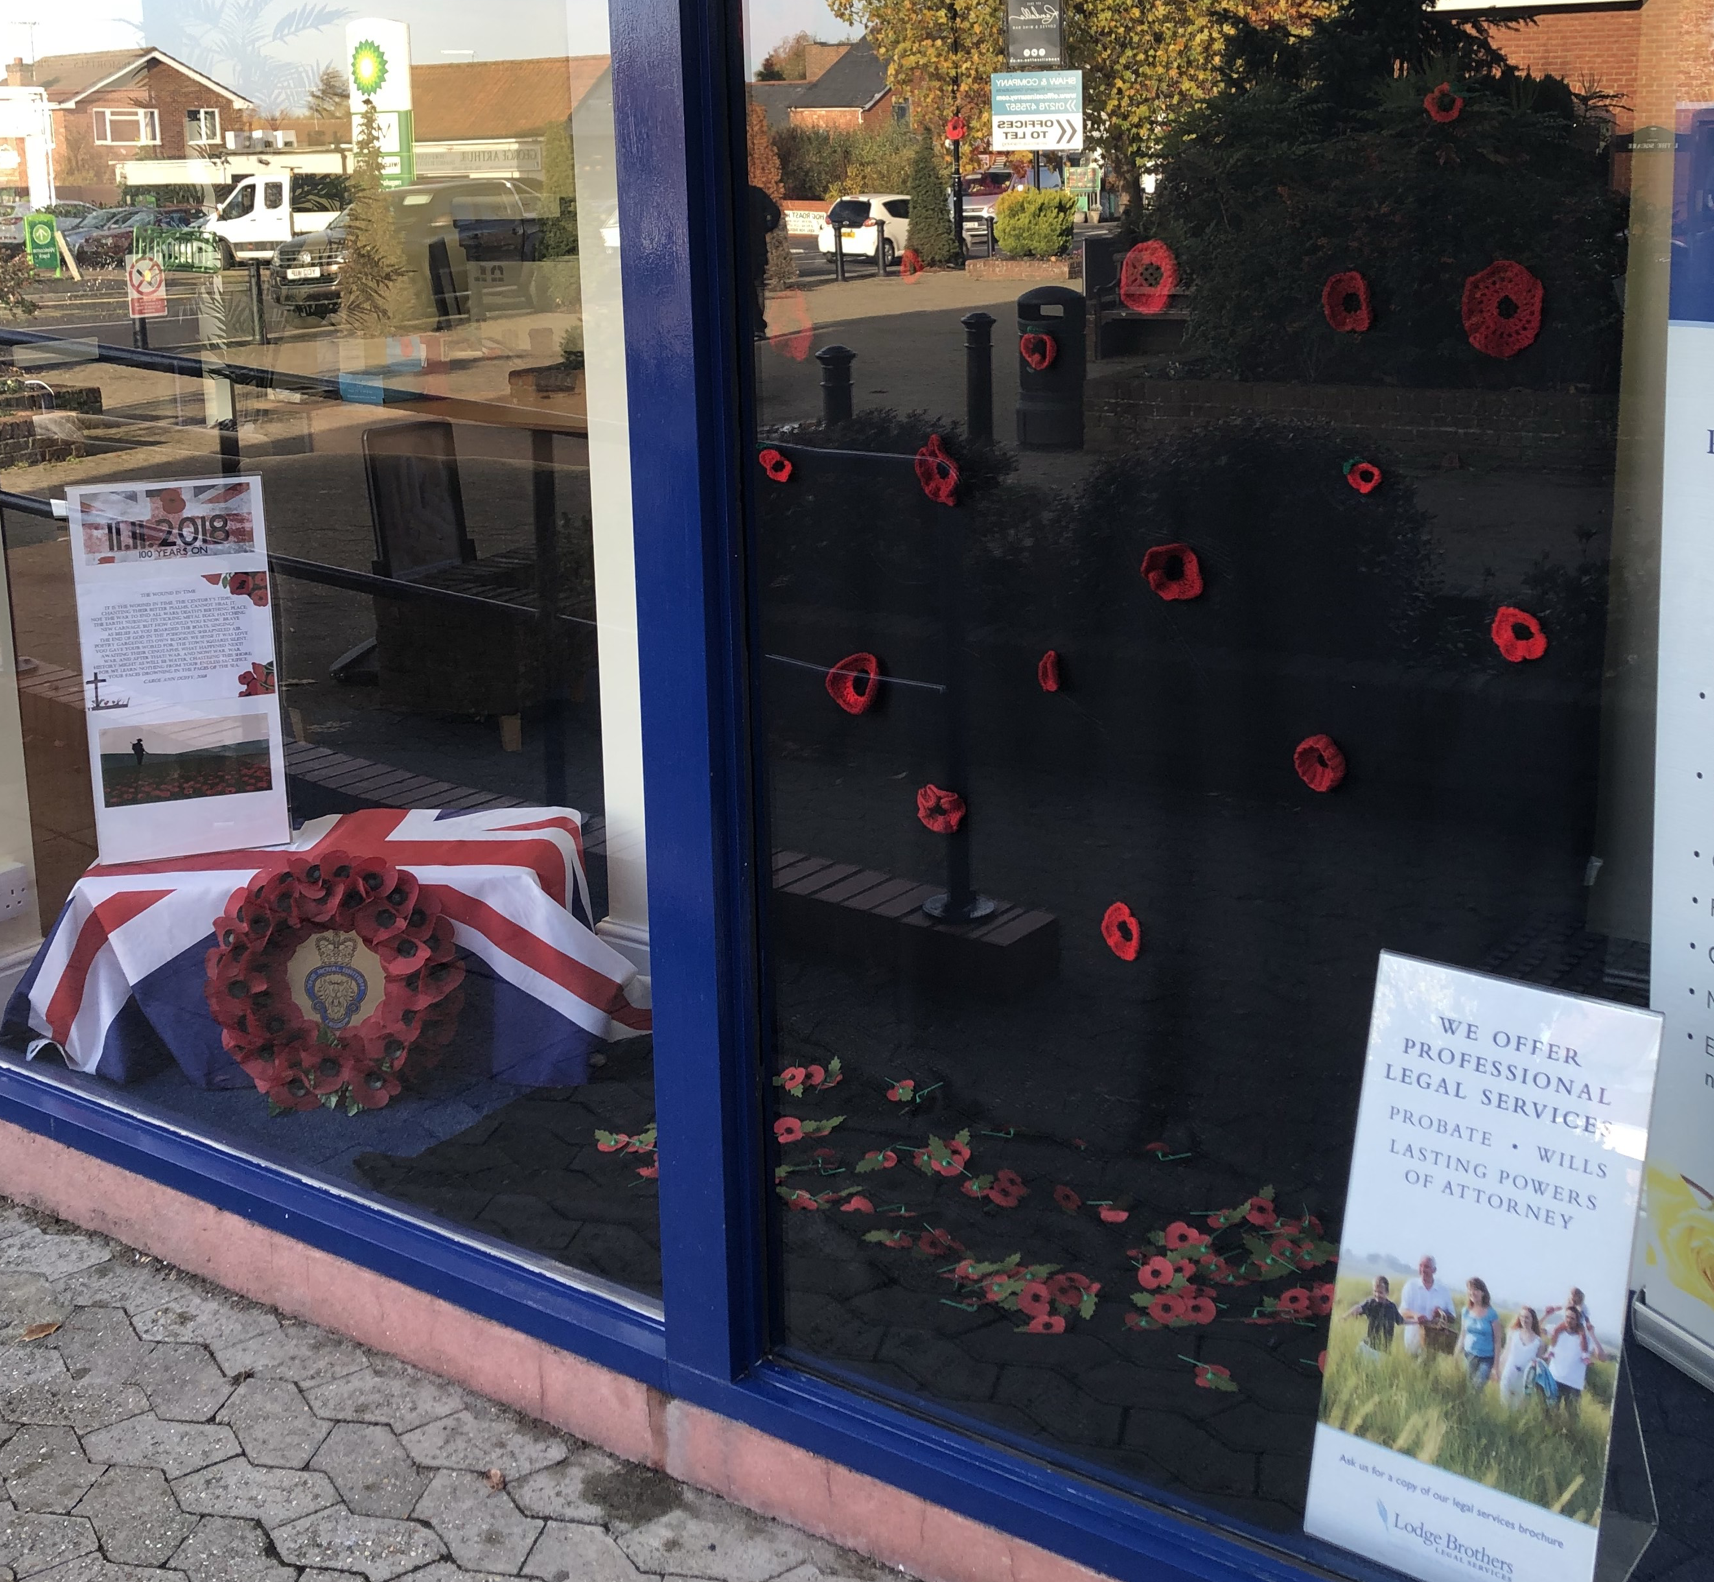 Lodge Brothers, Lightwater says: 'Lest We Forget'